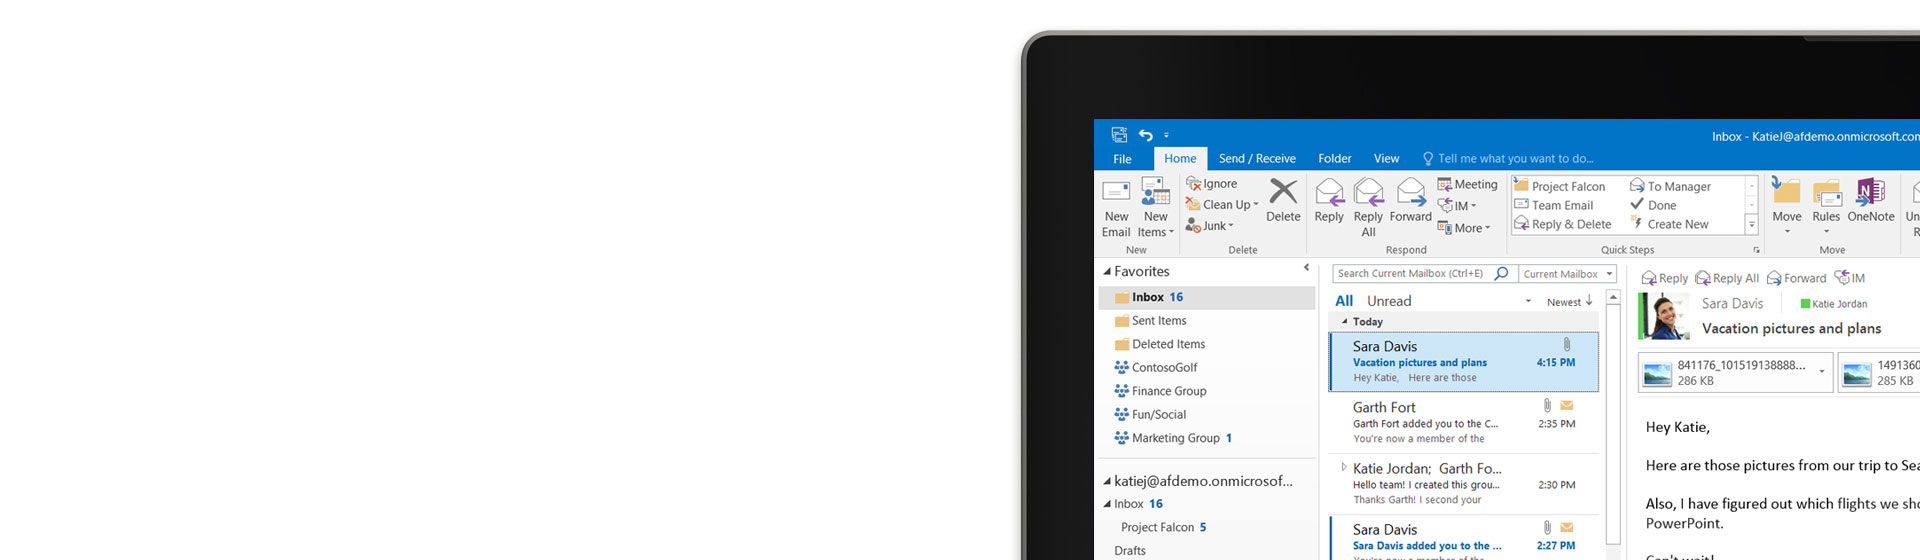 A tablet showing a Microsoft Outlook 2016 inbox with a message list and preview.